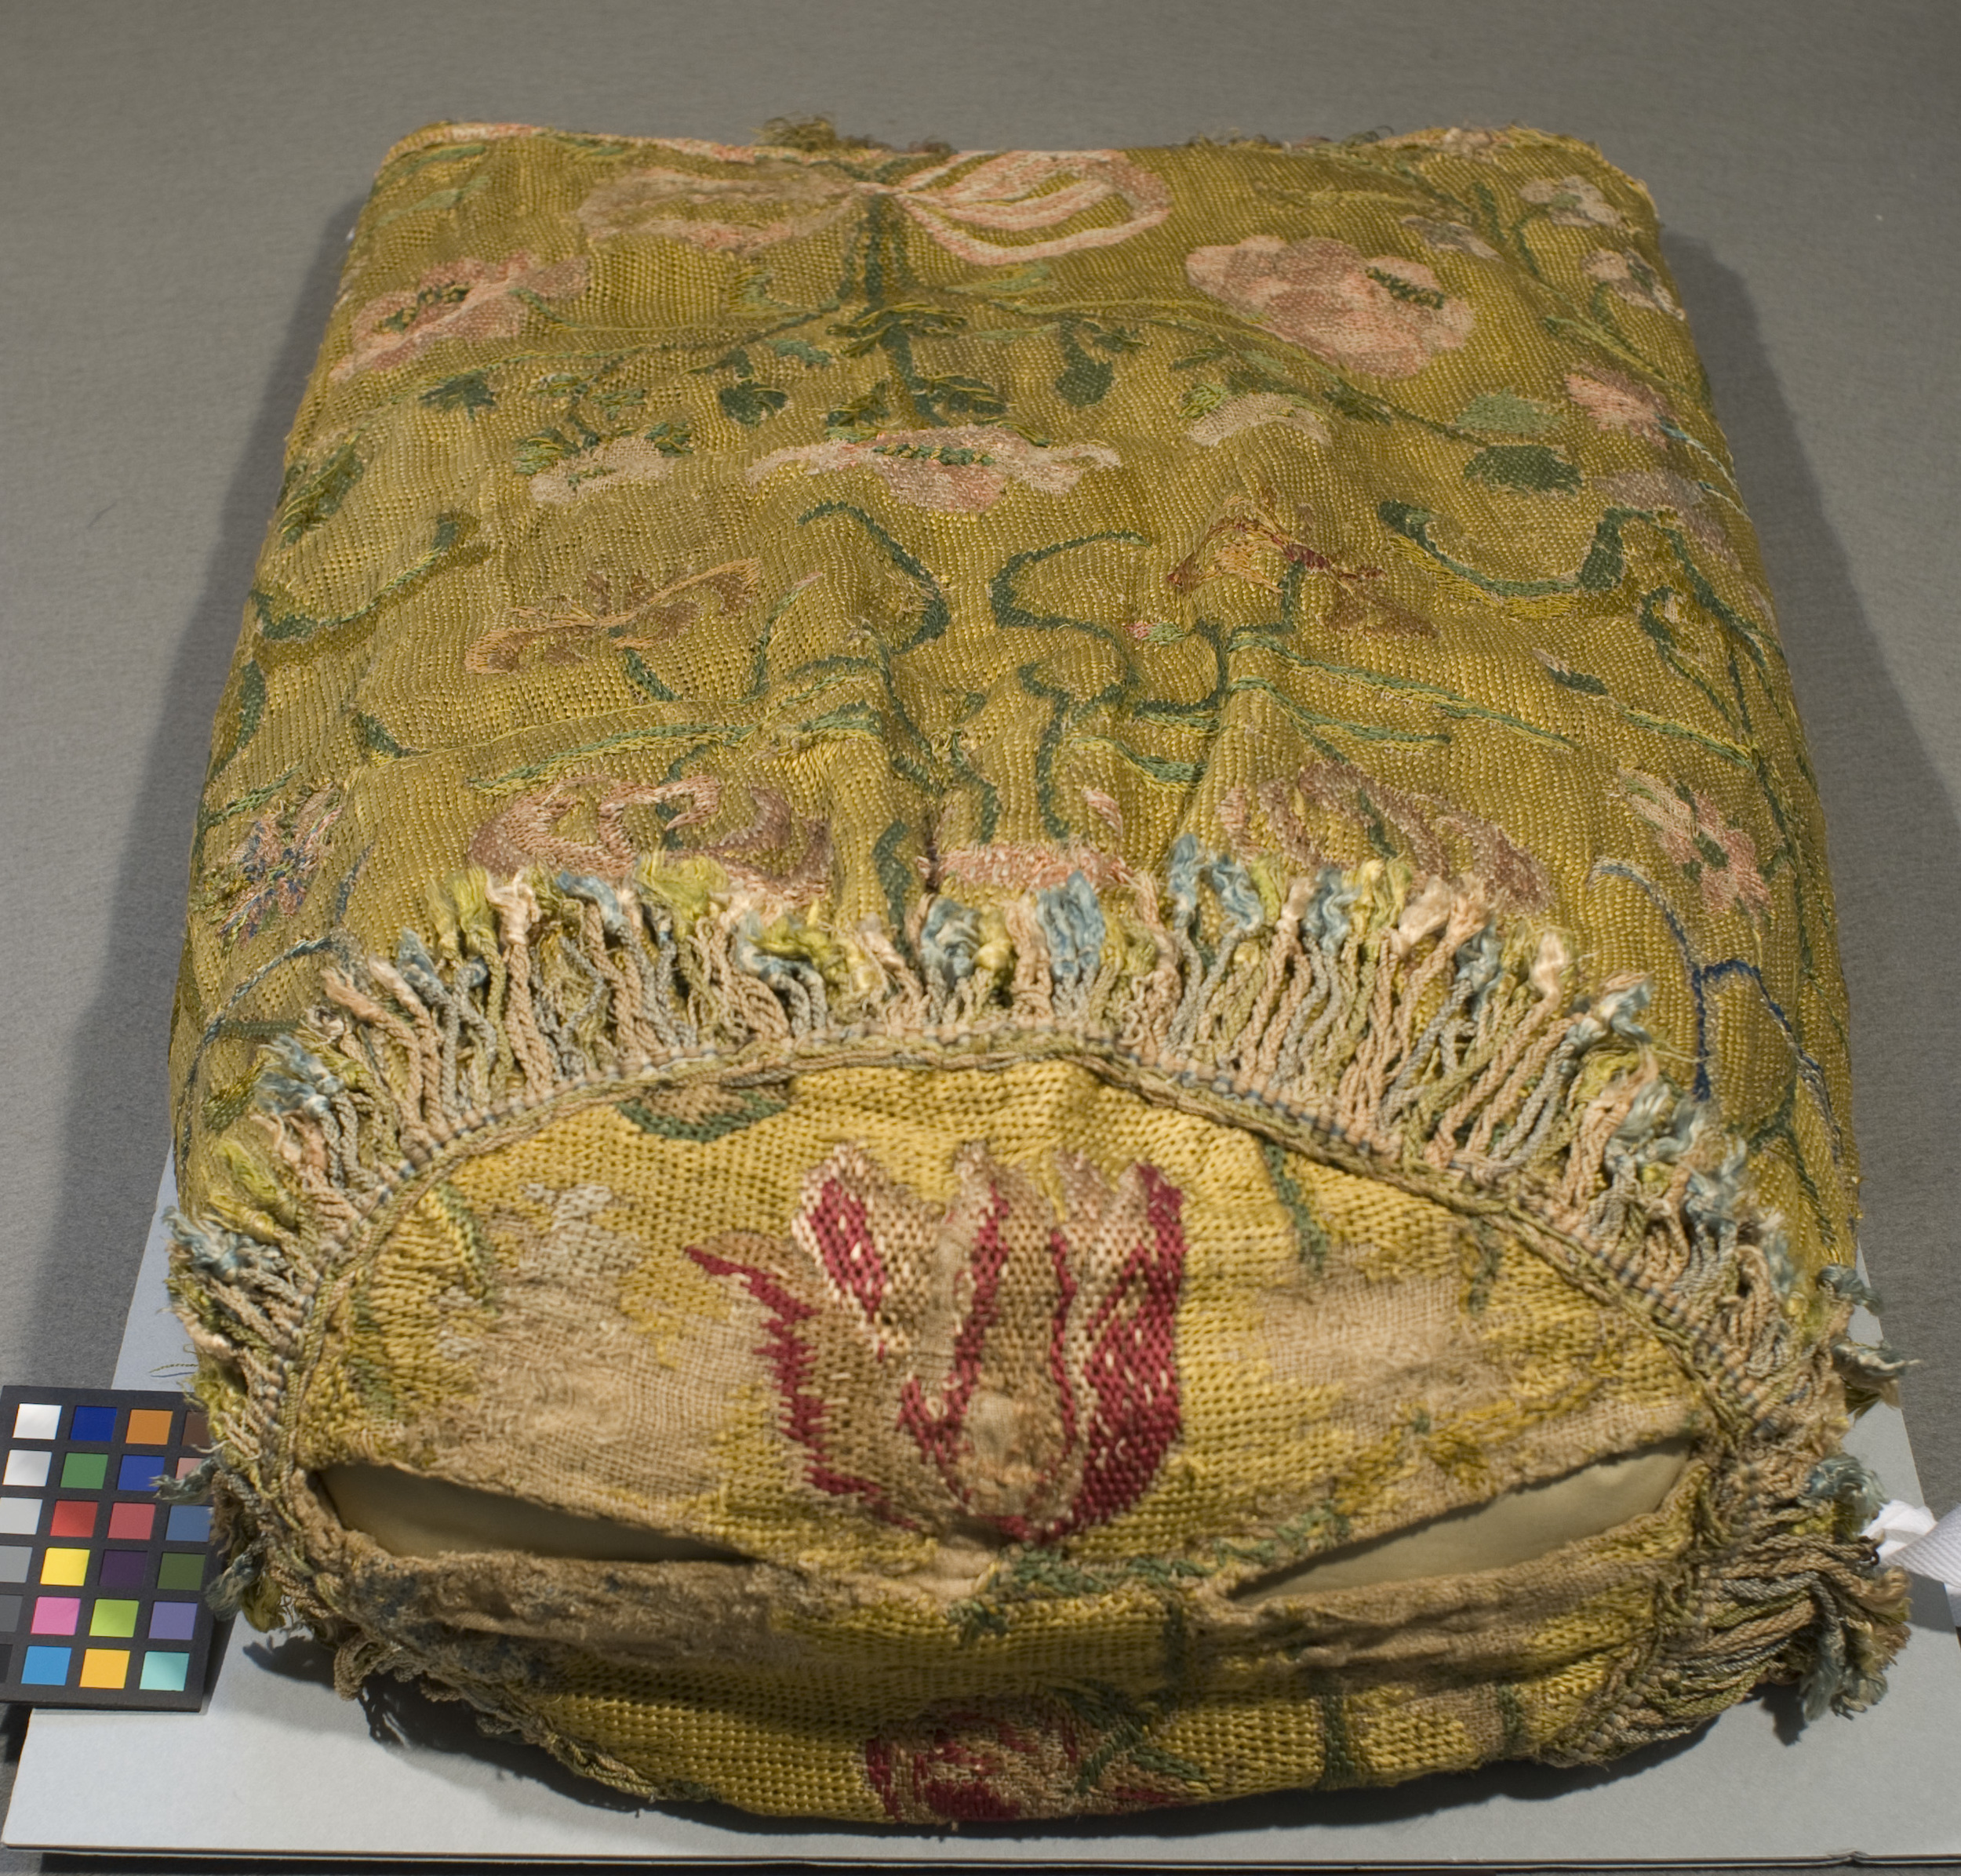 Internal shaping was required to display this Torah mantle.